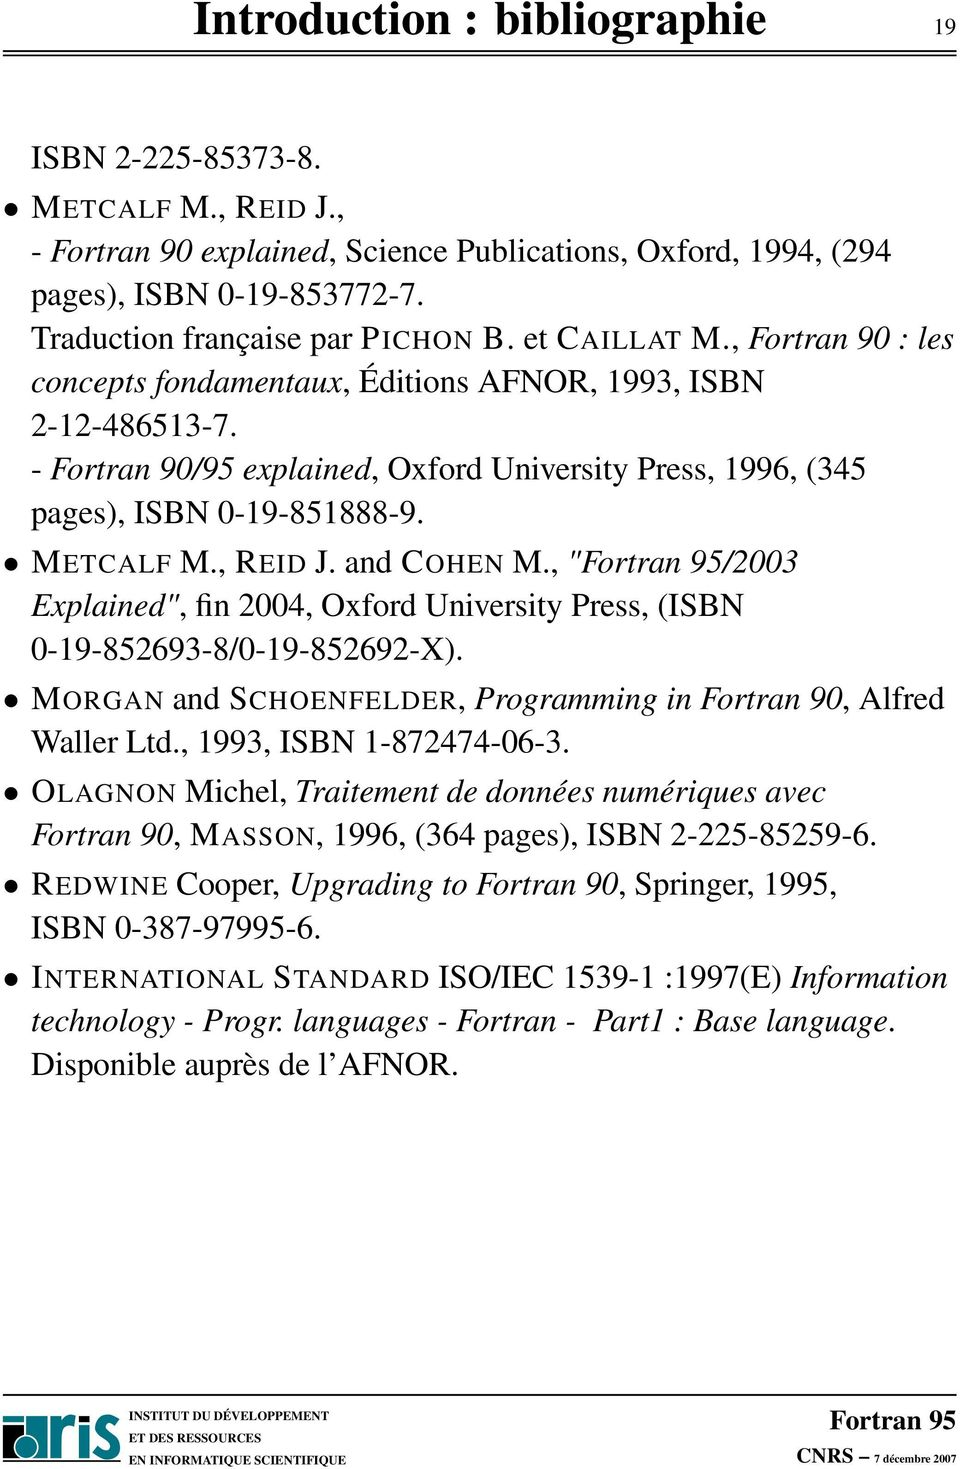 ", REID J. and COHEN M., ""/2003 Explained"", fin 2004, Oxford University Press, (ISBN 0-19-852693-8/0-19-852692-X). MORGAN and SCHOENFELDER, Programming in Fortran 90, Alfred Waller Ltd."